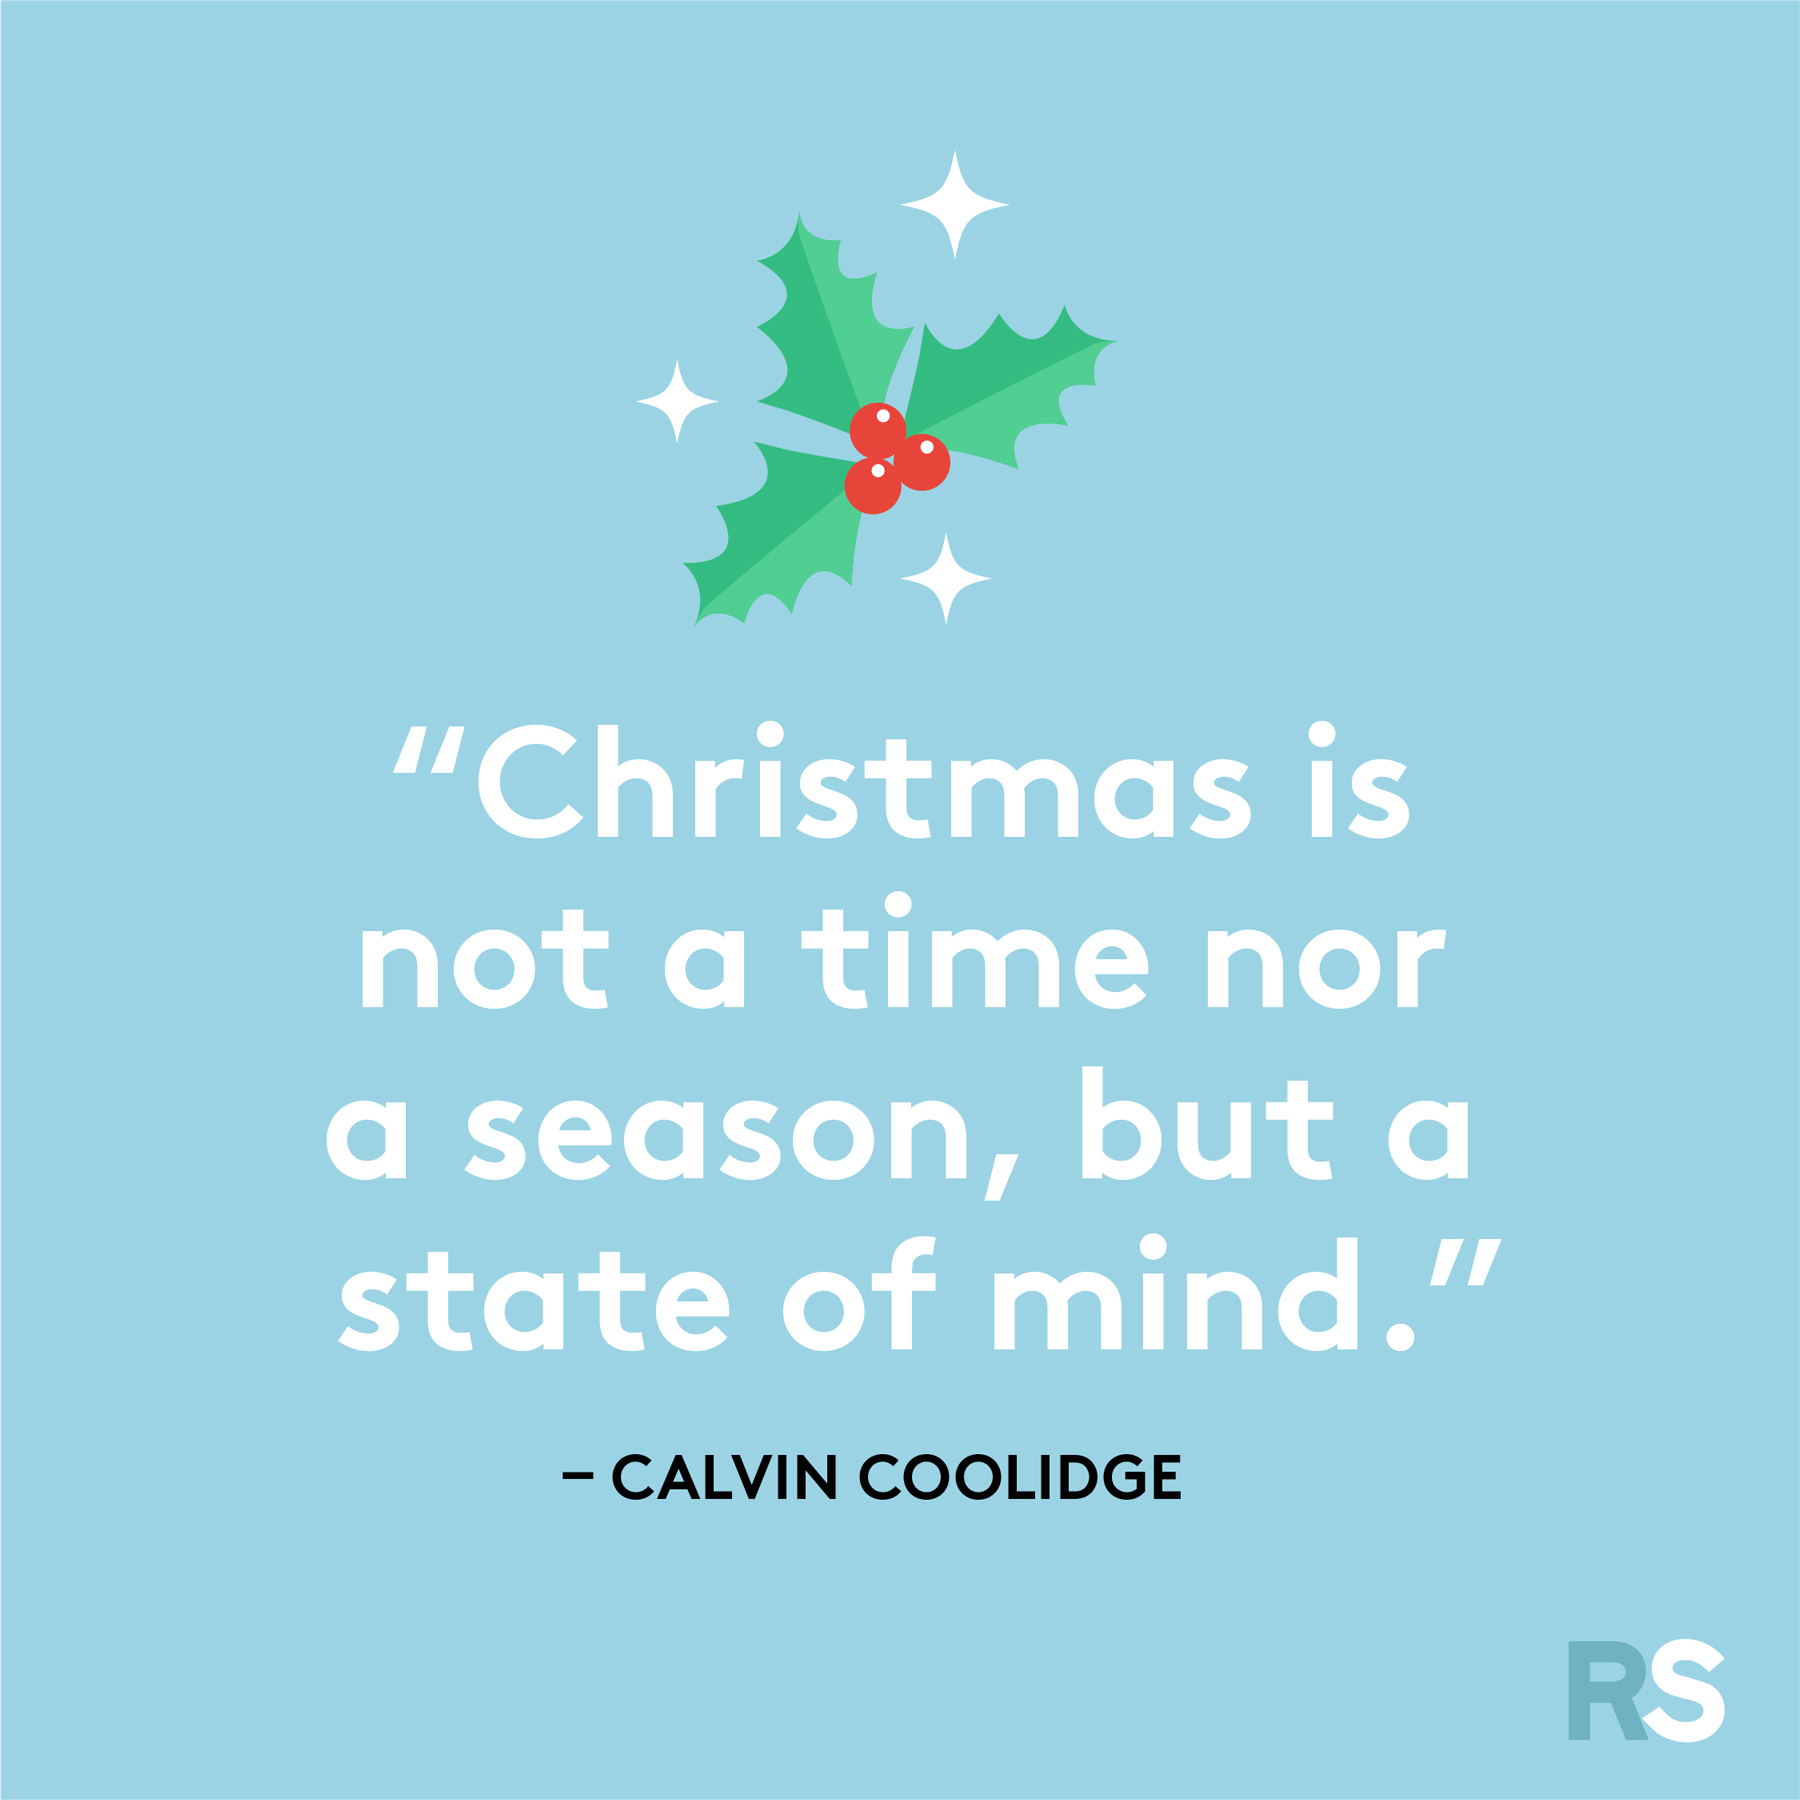 Best Christmas quotes - Calvin Coolidge